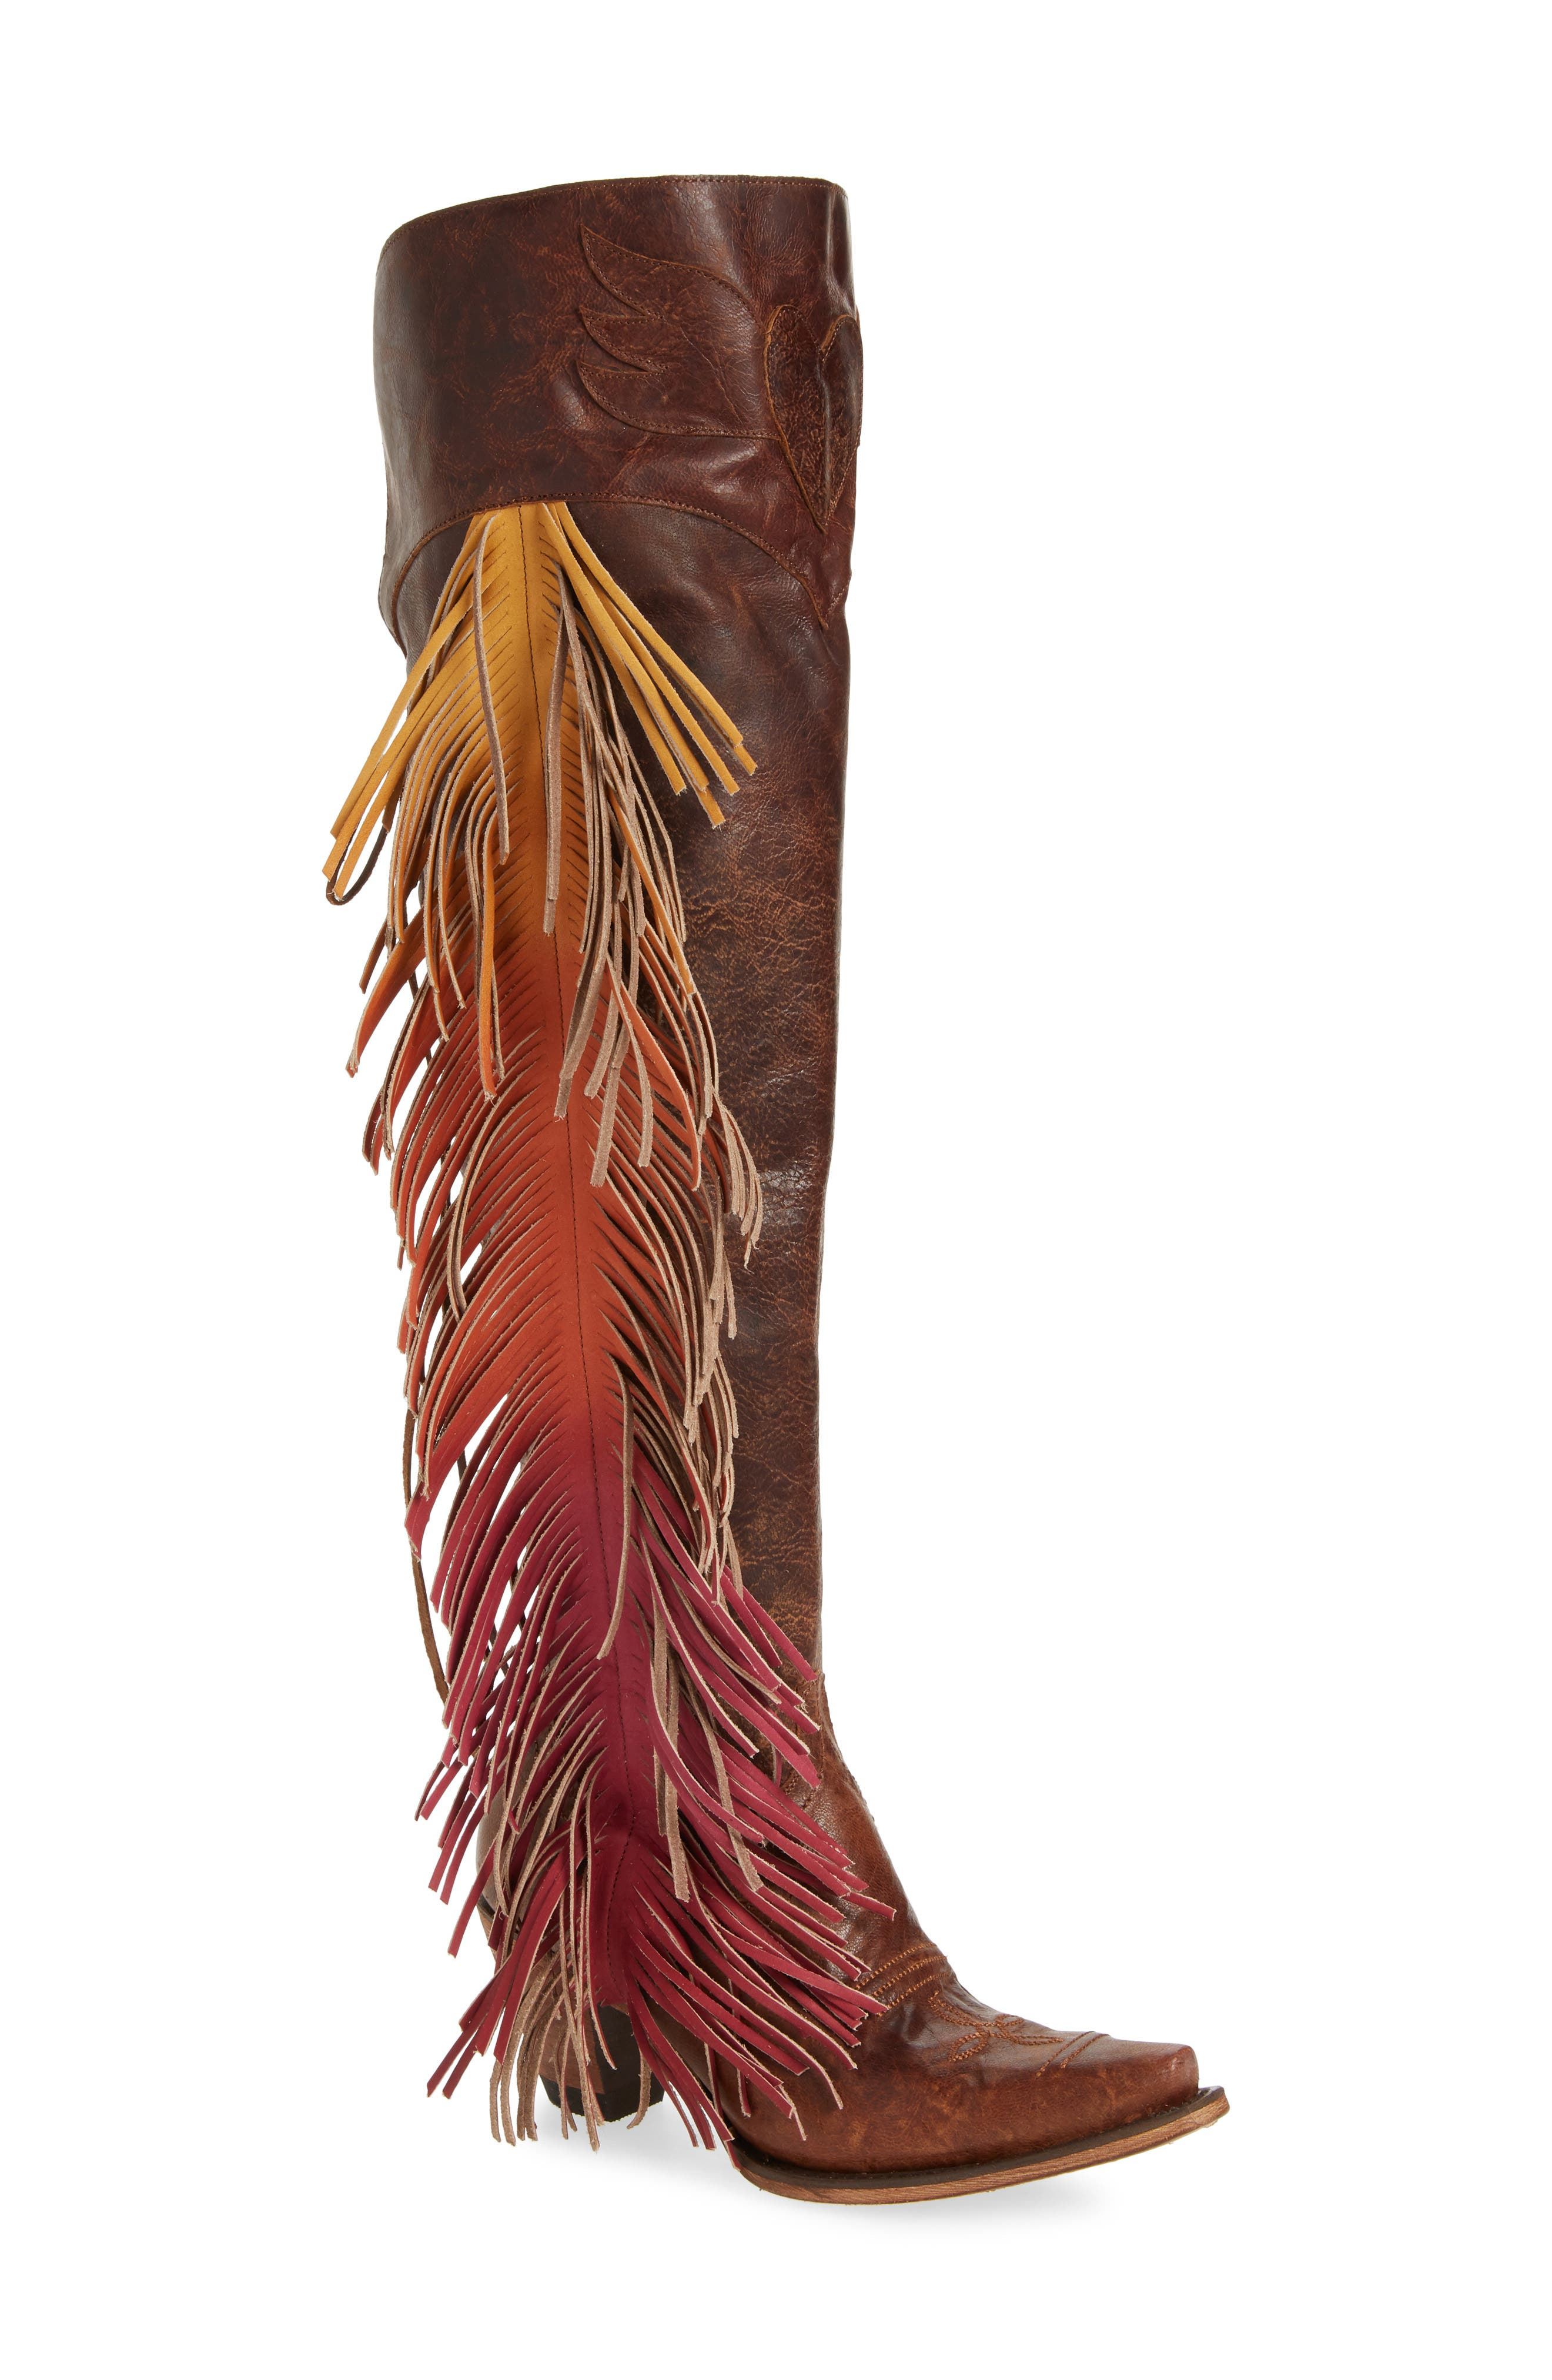 Vintage Boots, Granny Boots, Retro Boots Womens Lane Boots X Junk Gypsy Fringe Over The Knee Western Boot Size 6.5 M - Brown $315.96 AT vintagedancer.com